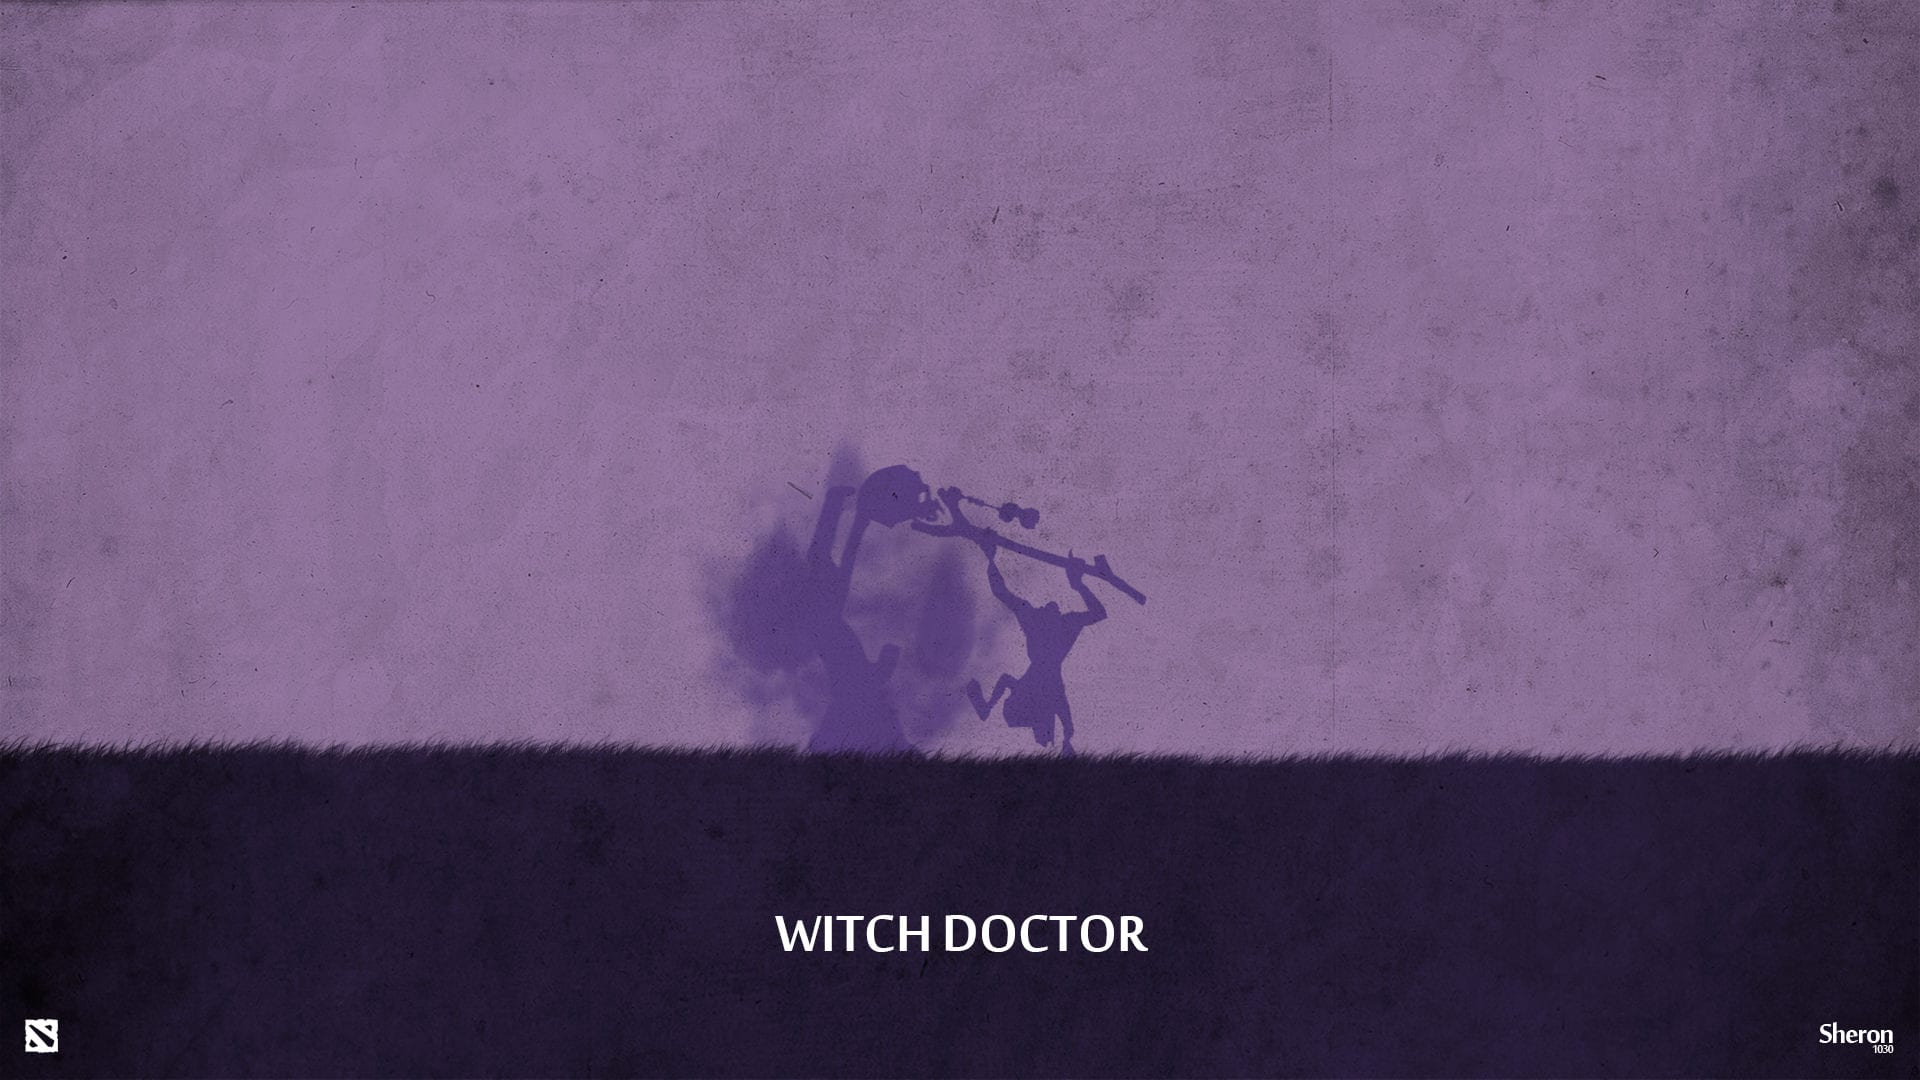 Dota2 : Witch Doctor Backgrounds